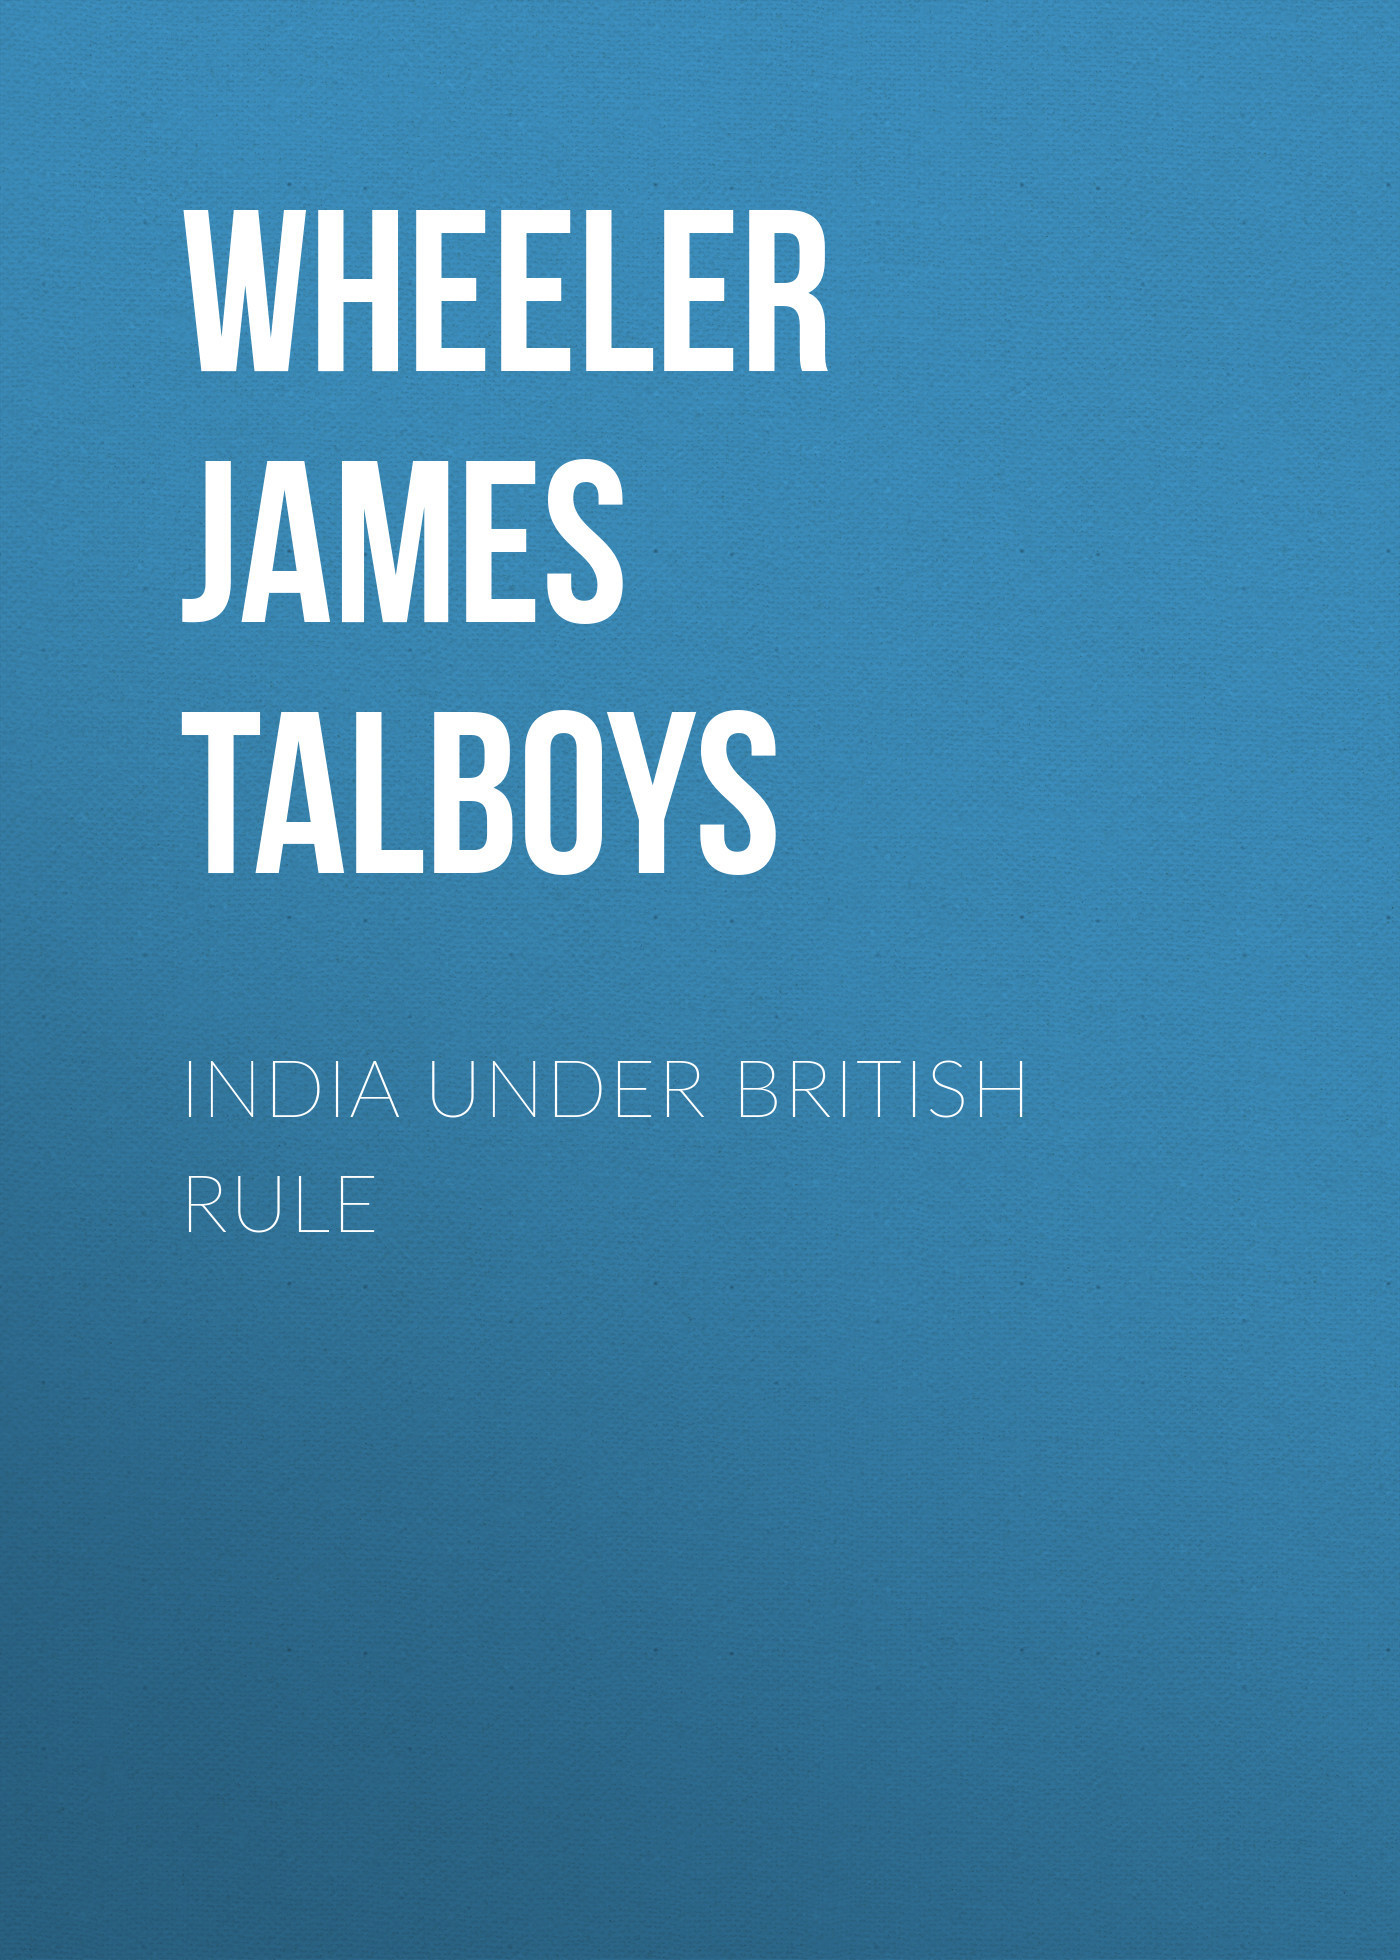 Wheeler James Talboys India Under British Rule леггинсы duwali